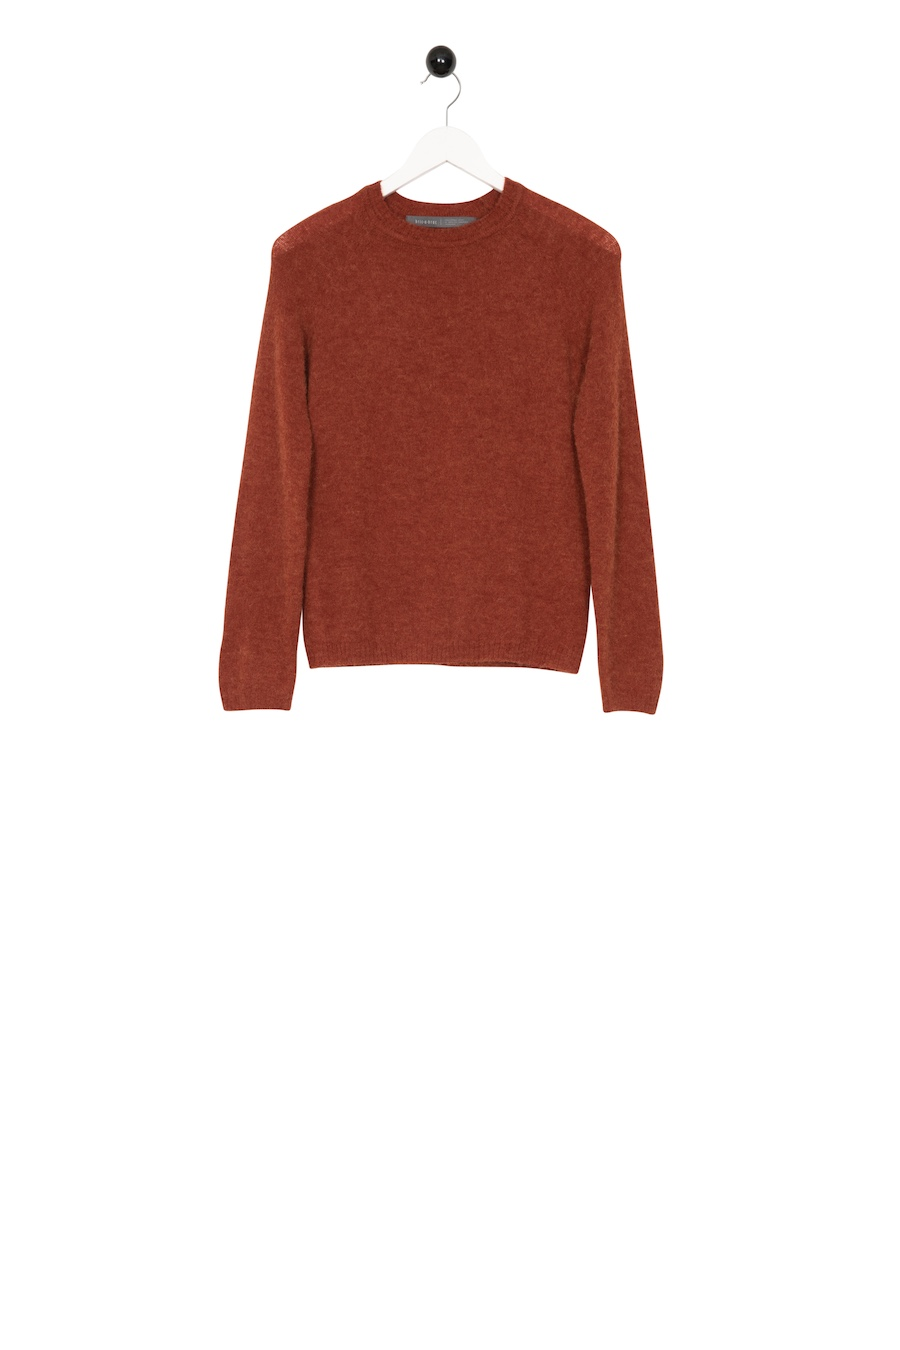 Fikon Sweater